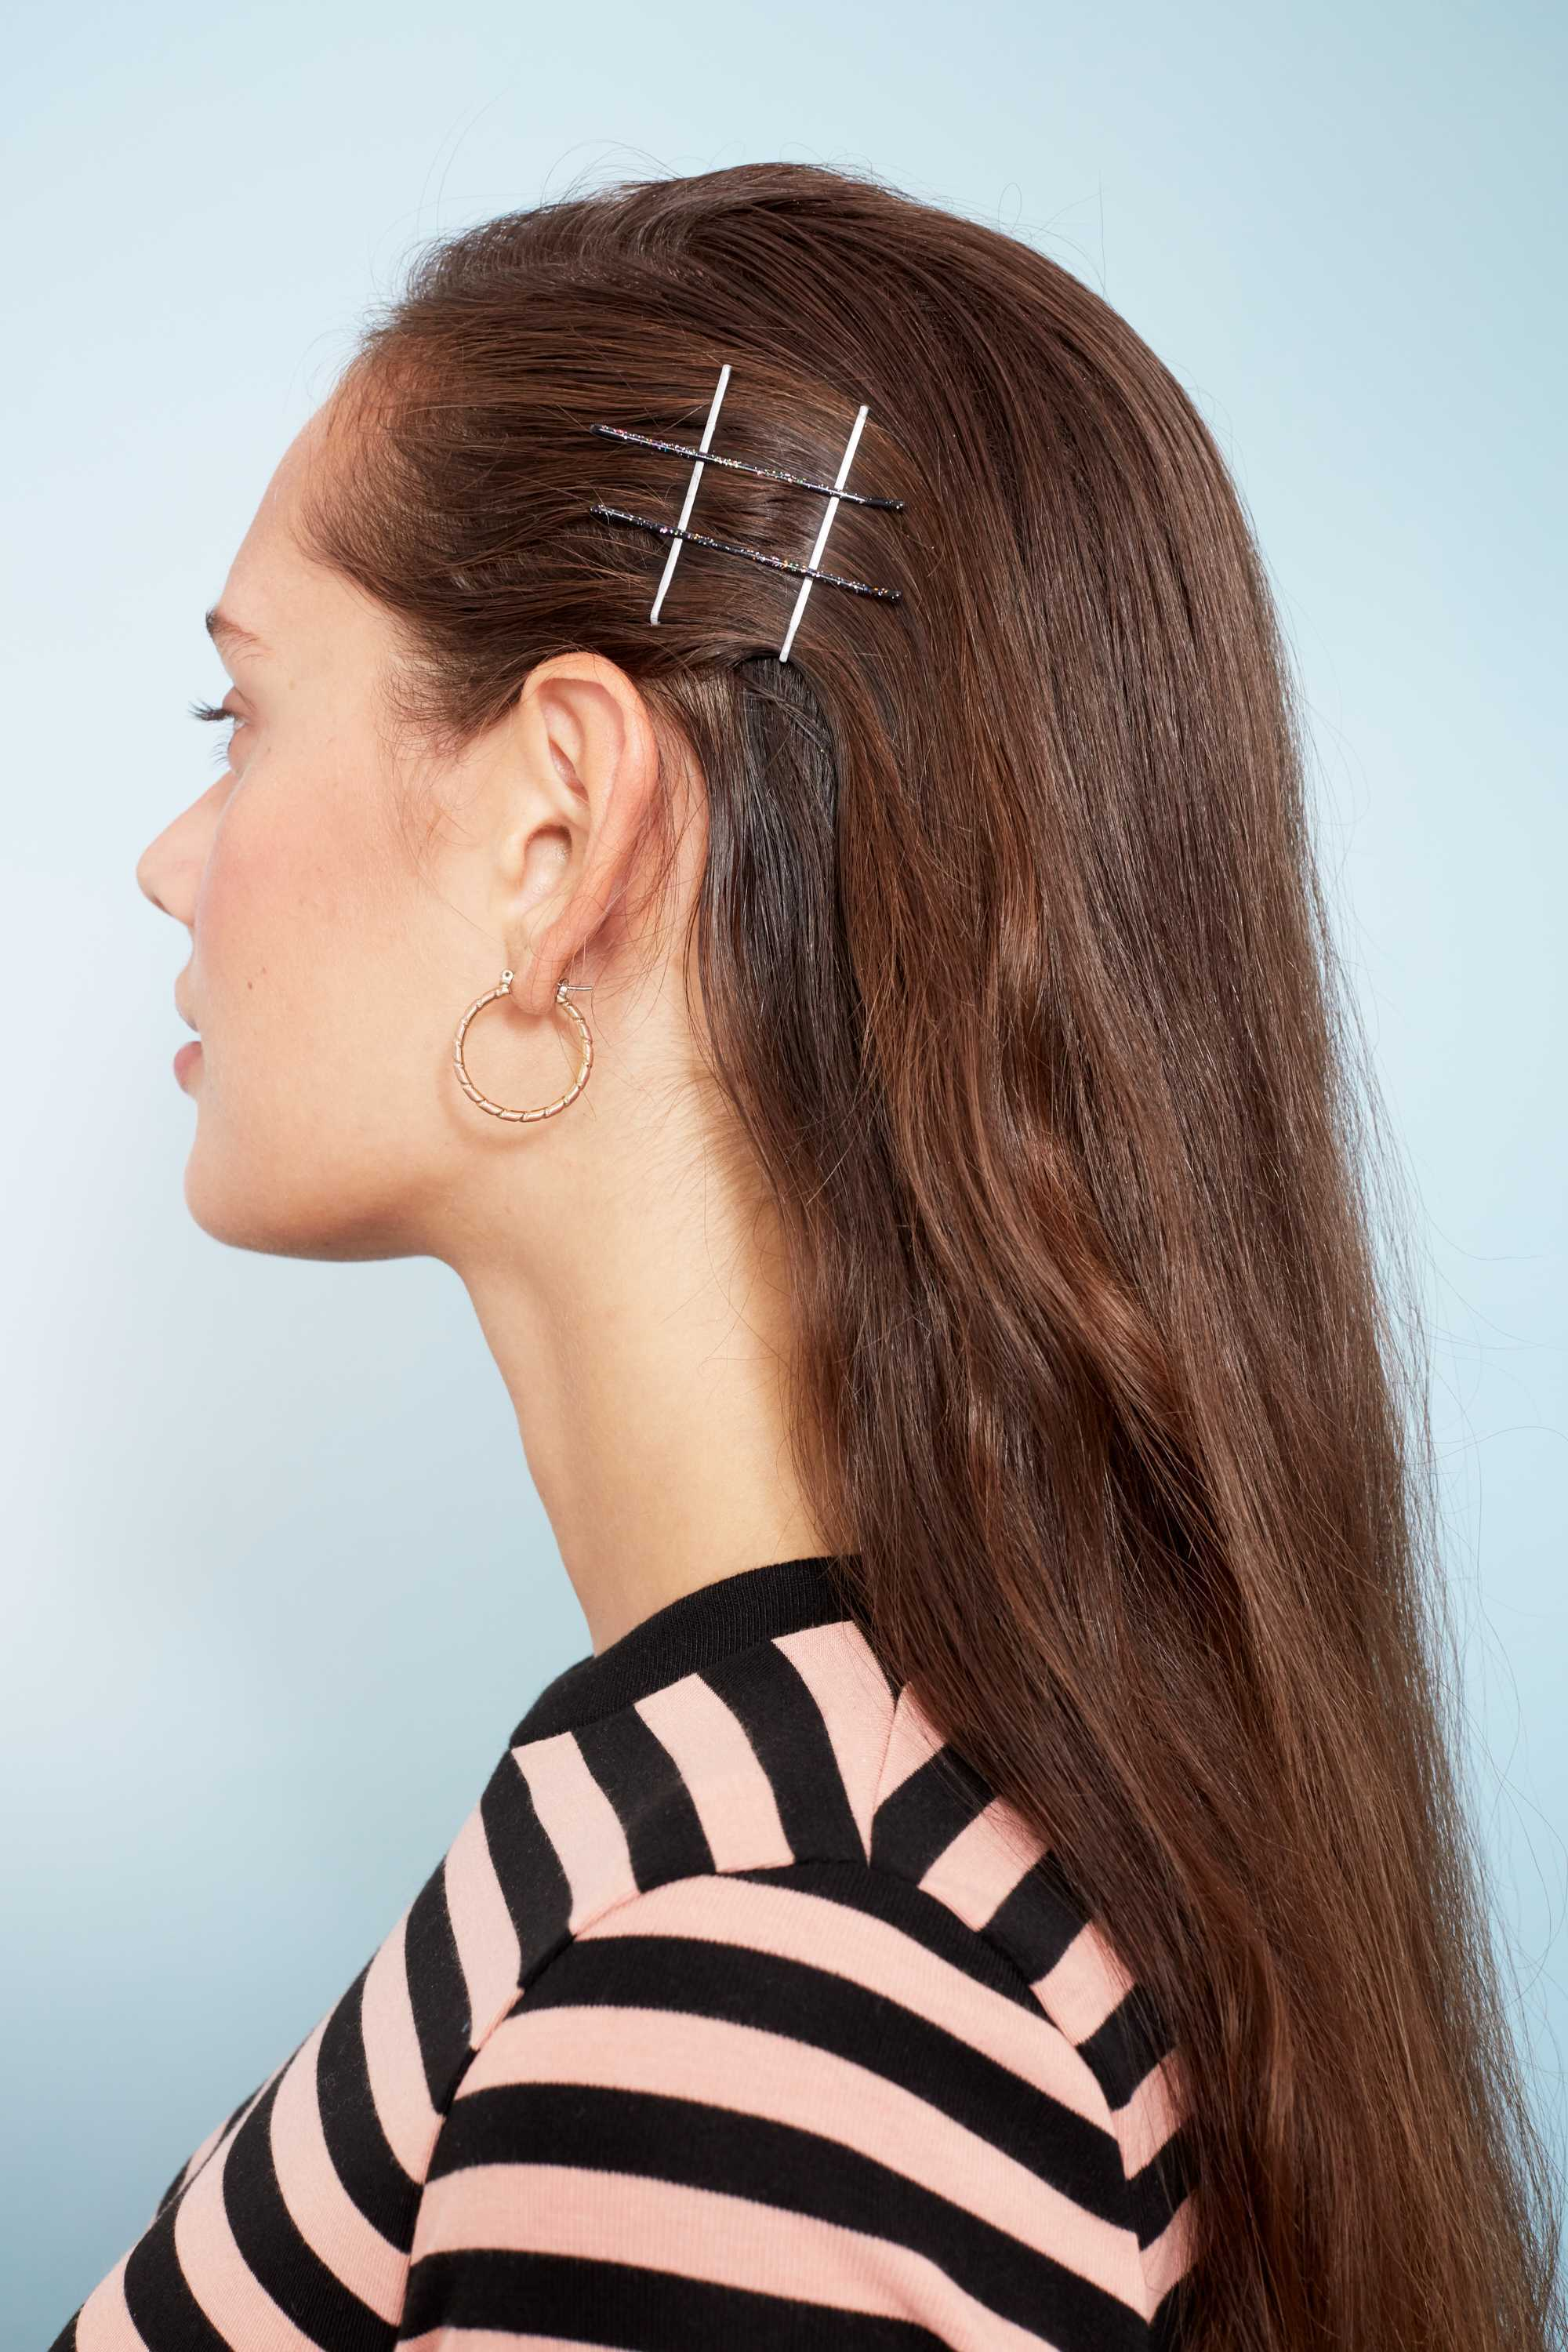 Bobby pin hairstyles: Close up shot of a woman with long chestnut brown hair styled with bobby pins shaped into a hashtag sign on one side of her hair. wearing stripes and posing in a studio setting